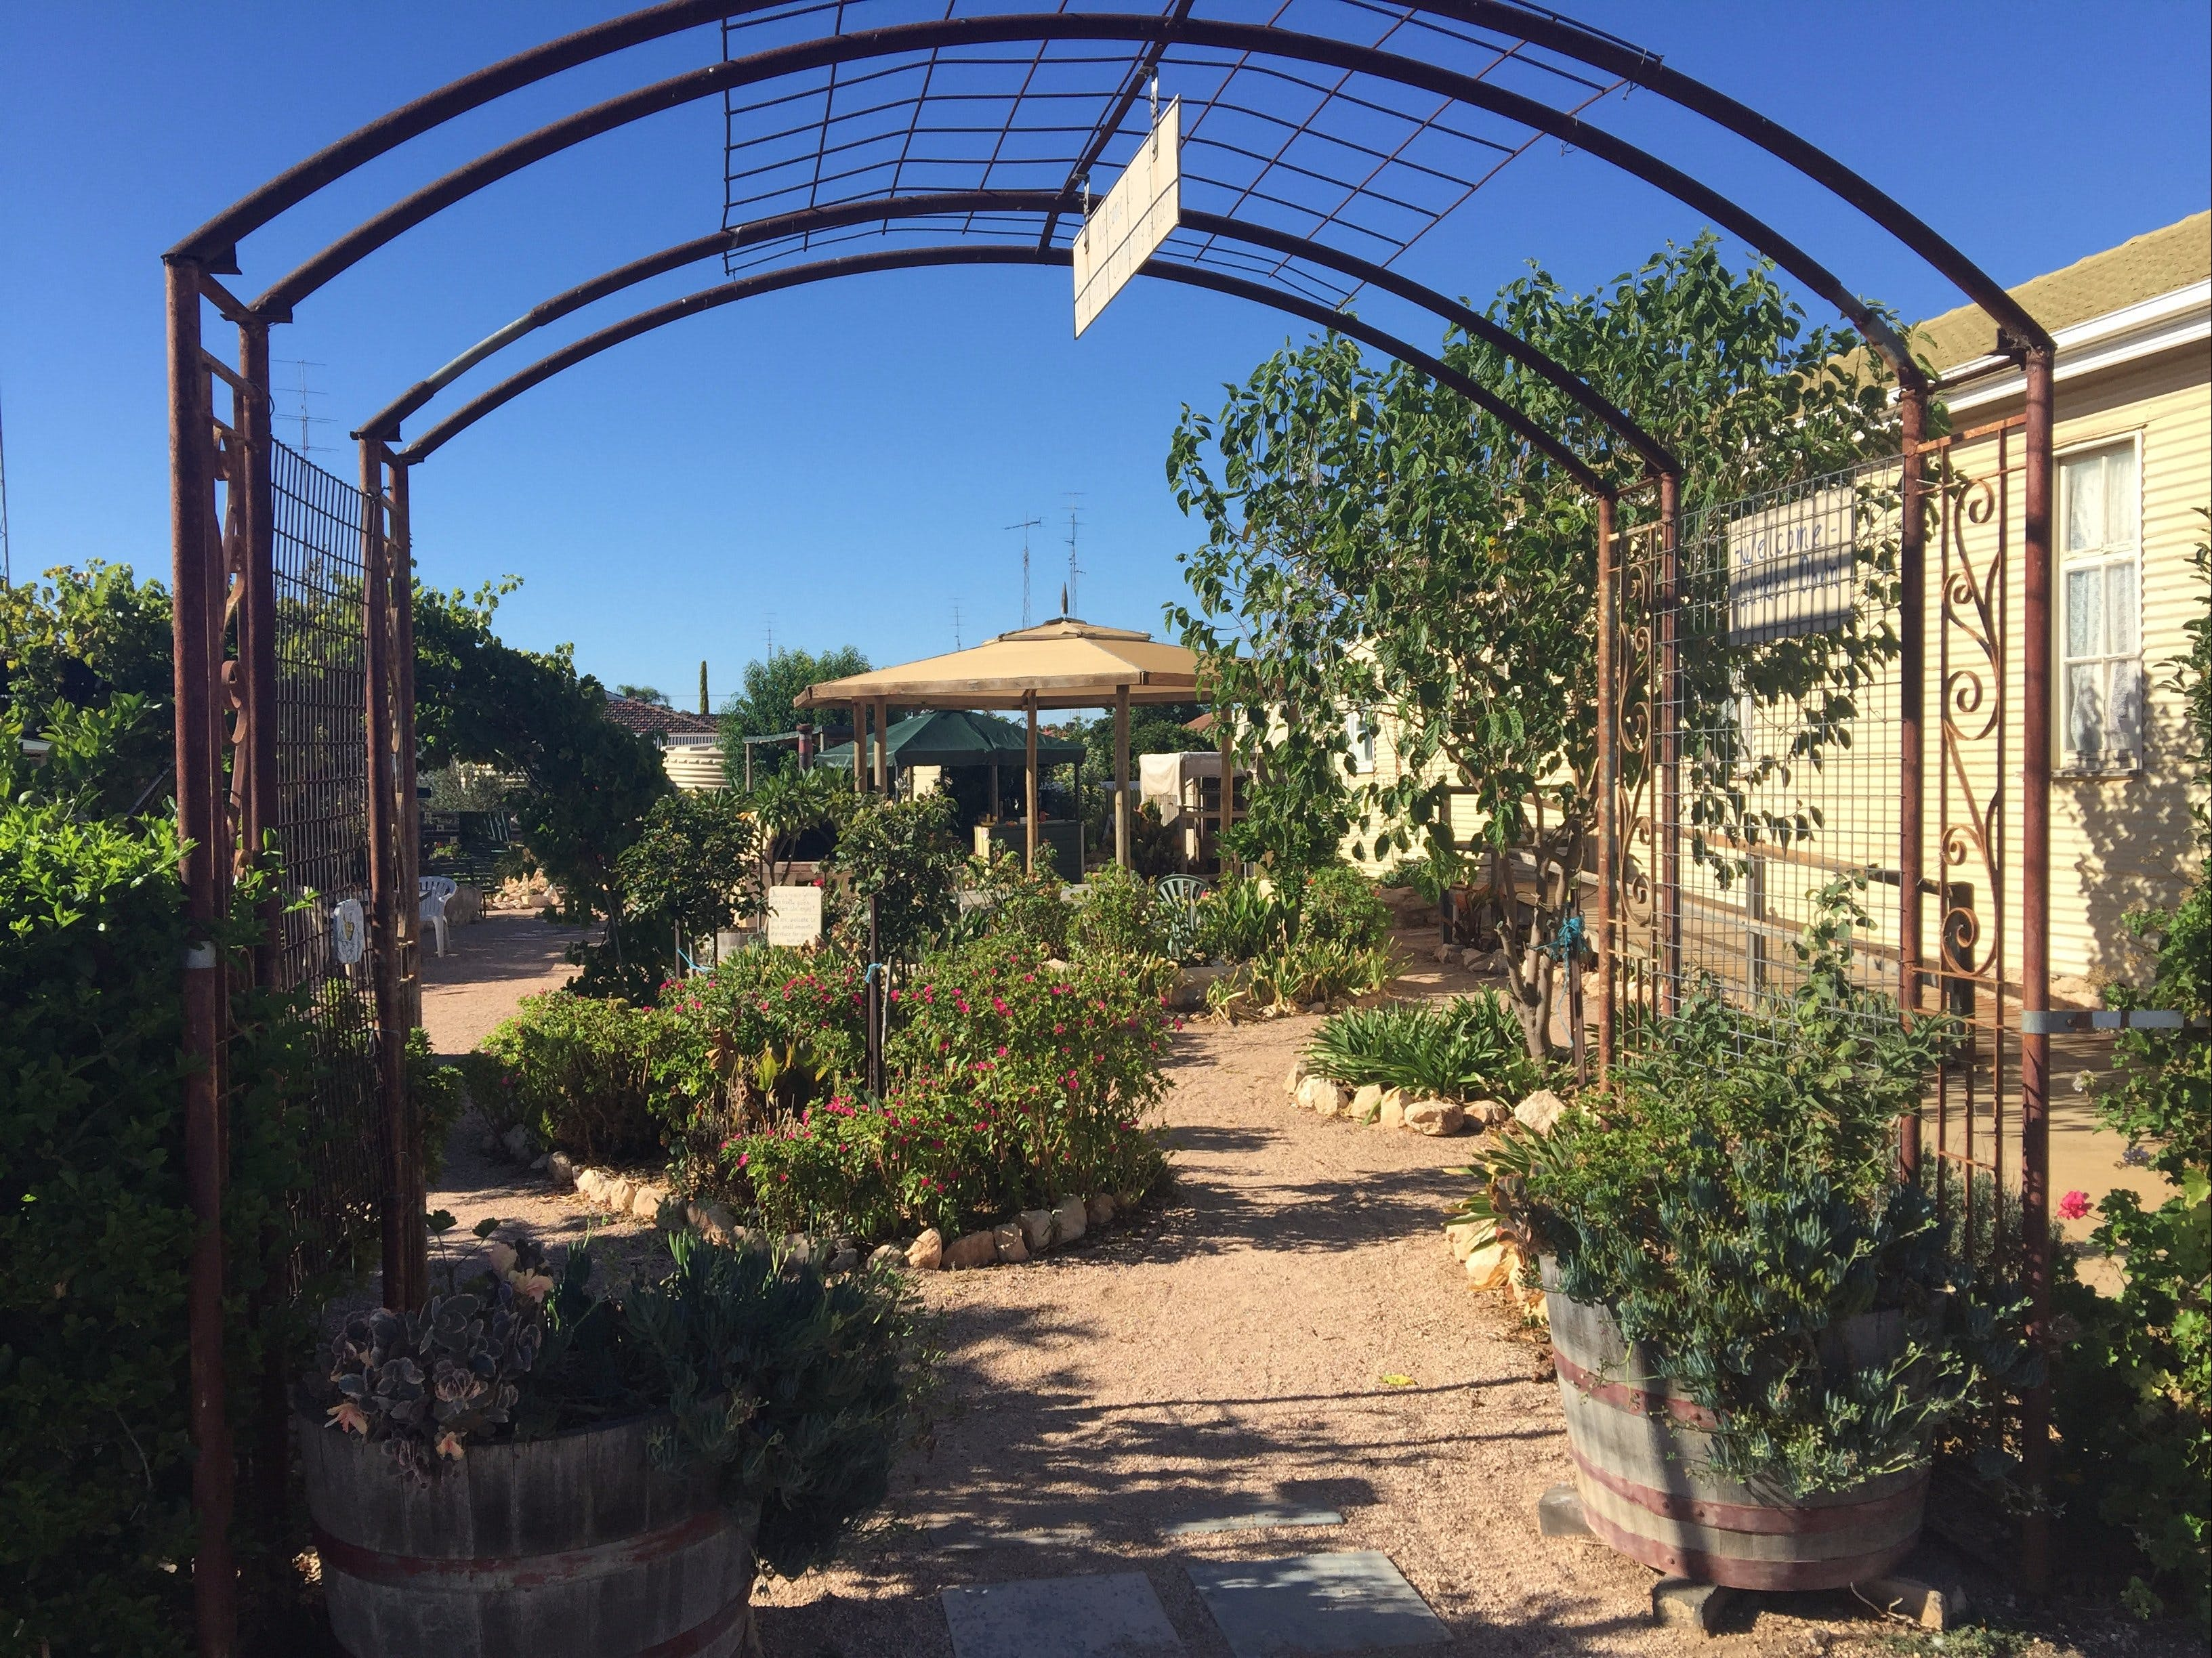 Anglican Community Cafe Limestone Art Gallery  Cornish Garden - Carnarvon Accommodation